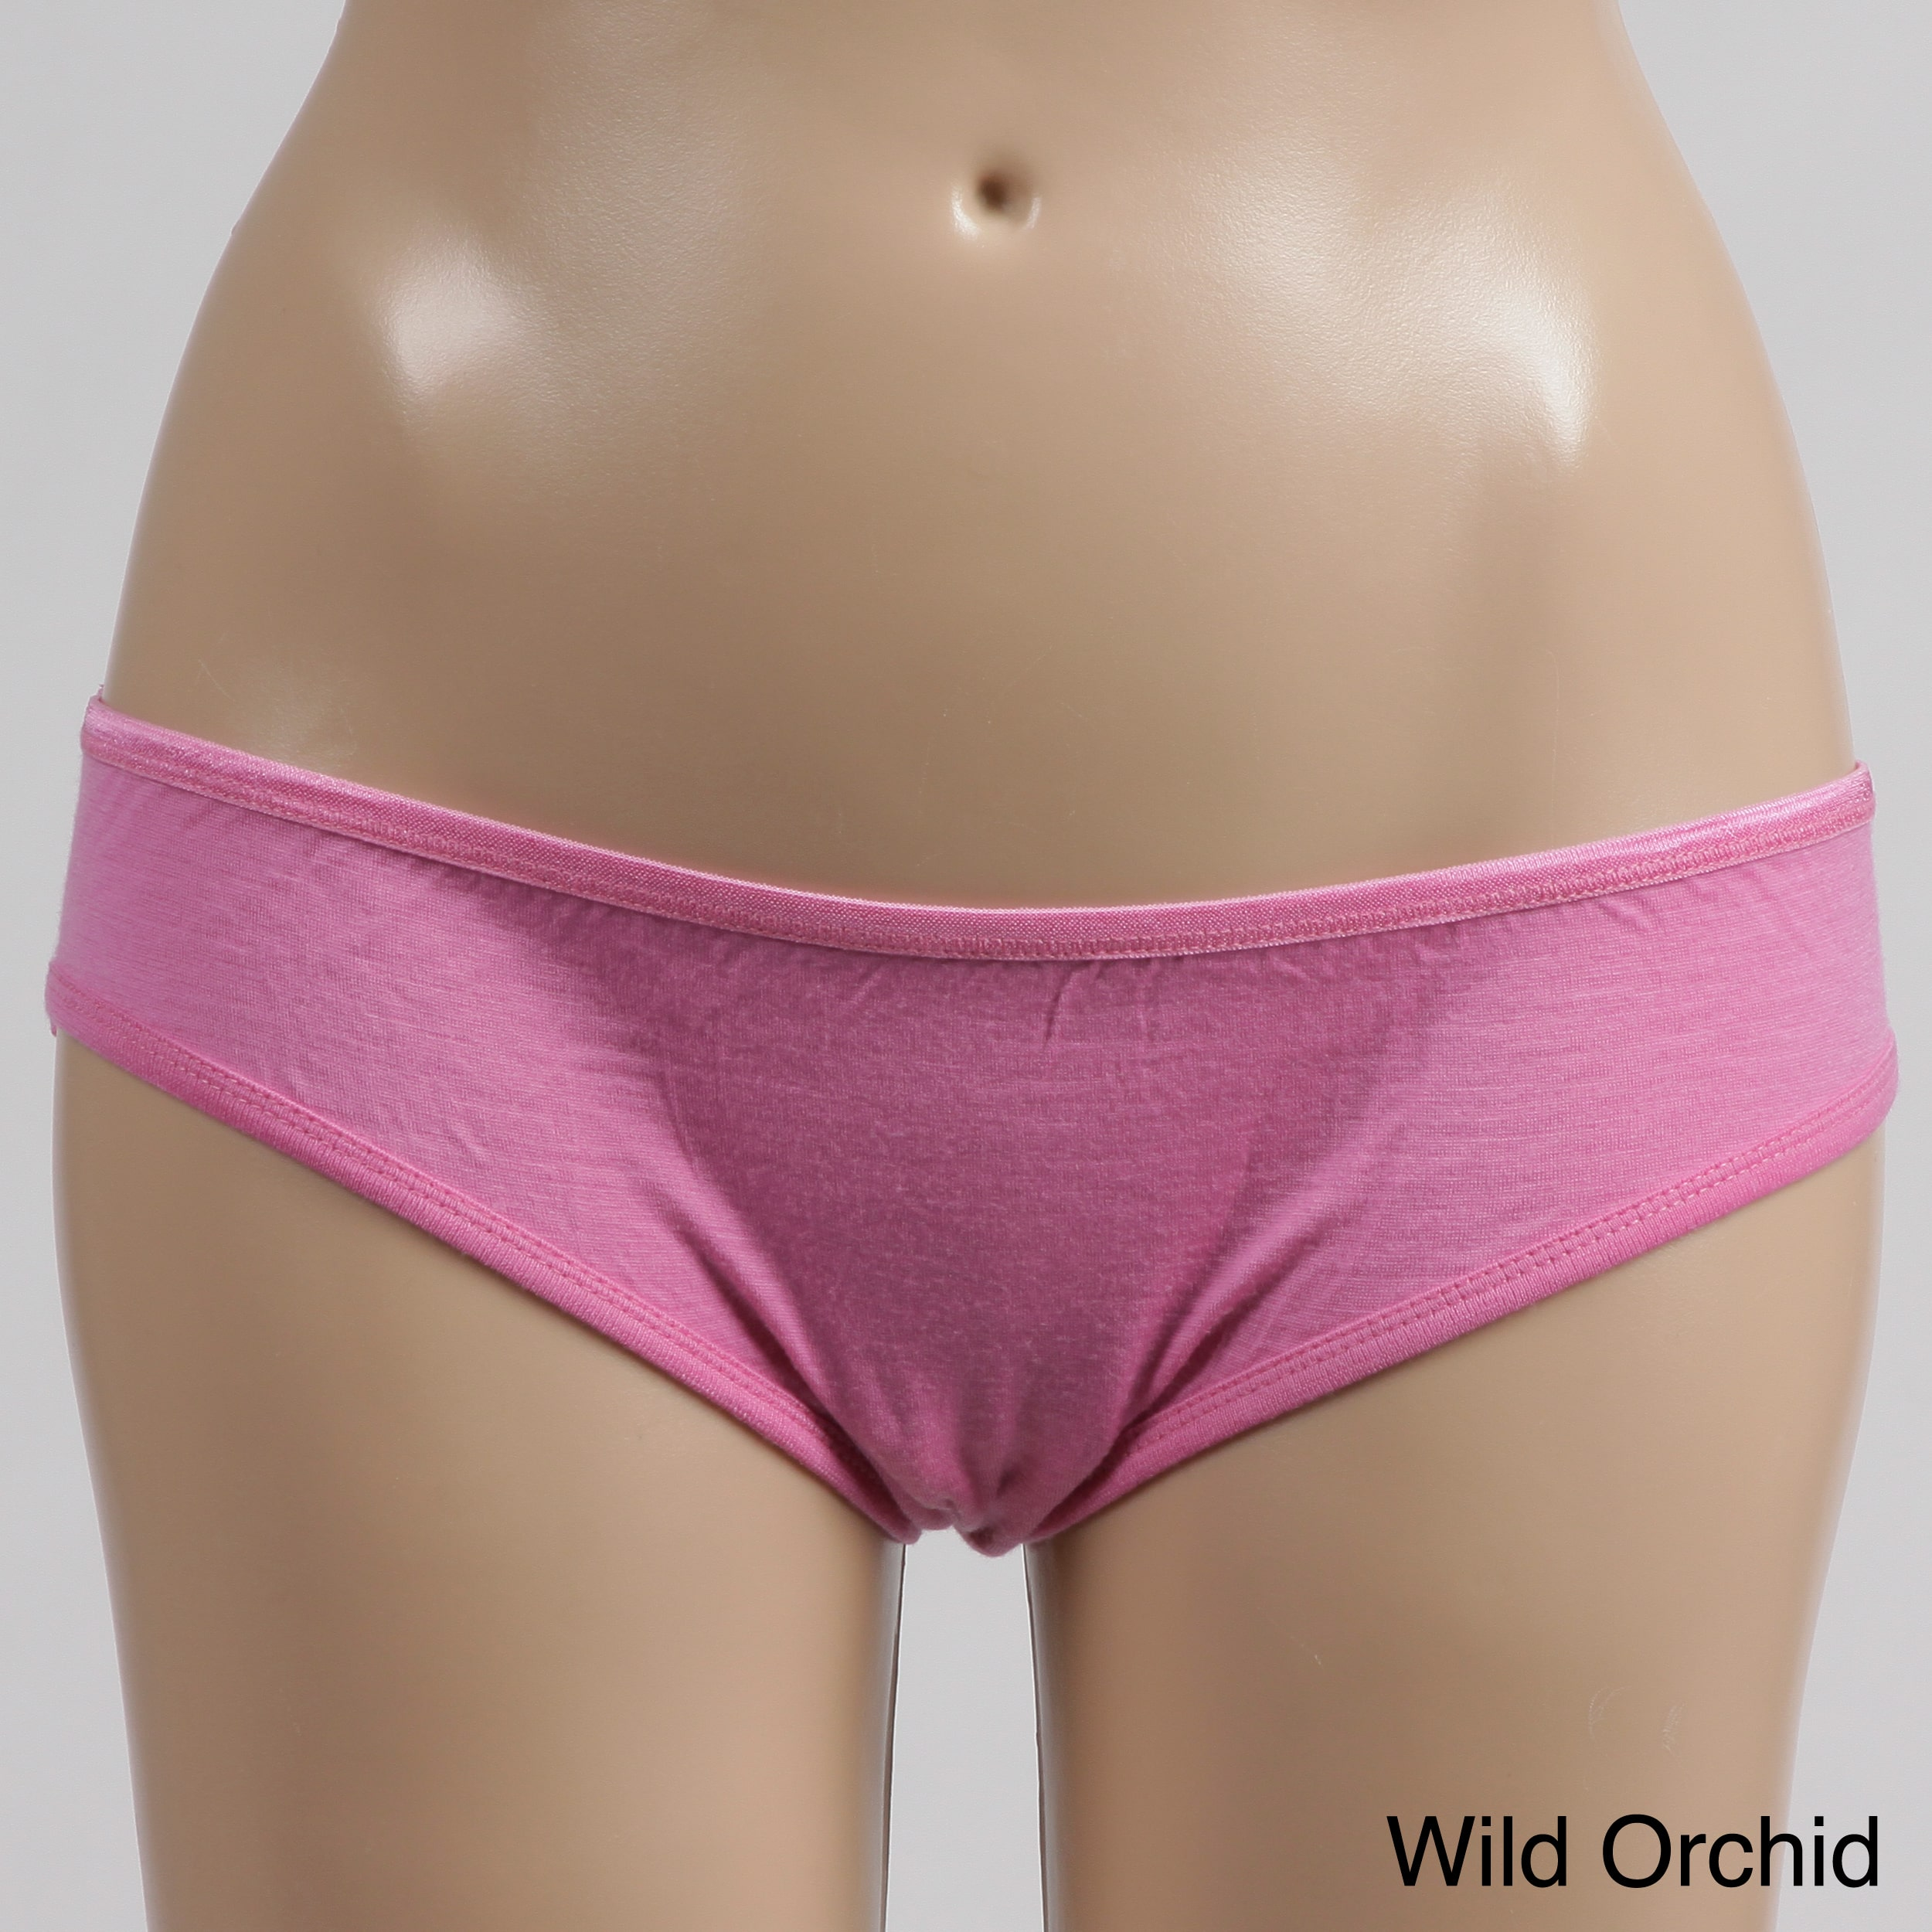 Minus33 Merino Wool Clothing  Women's Merino Wool Lightweight Base Layer Hipster Briefs